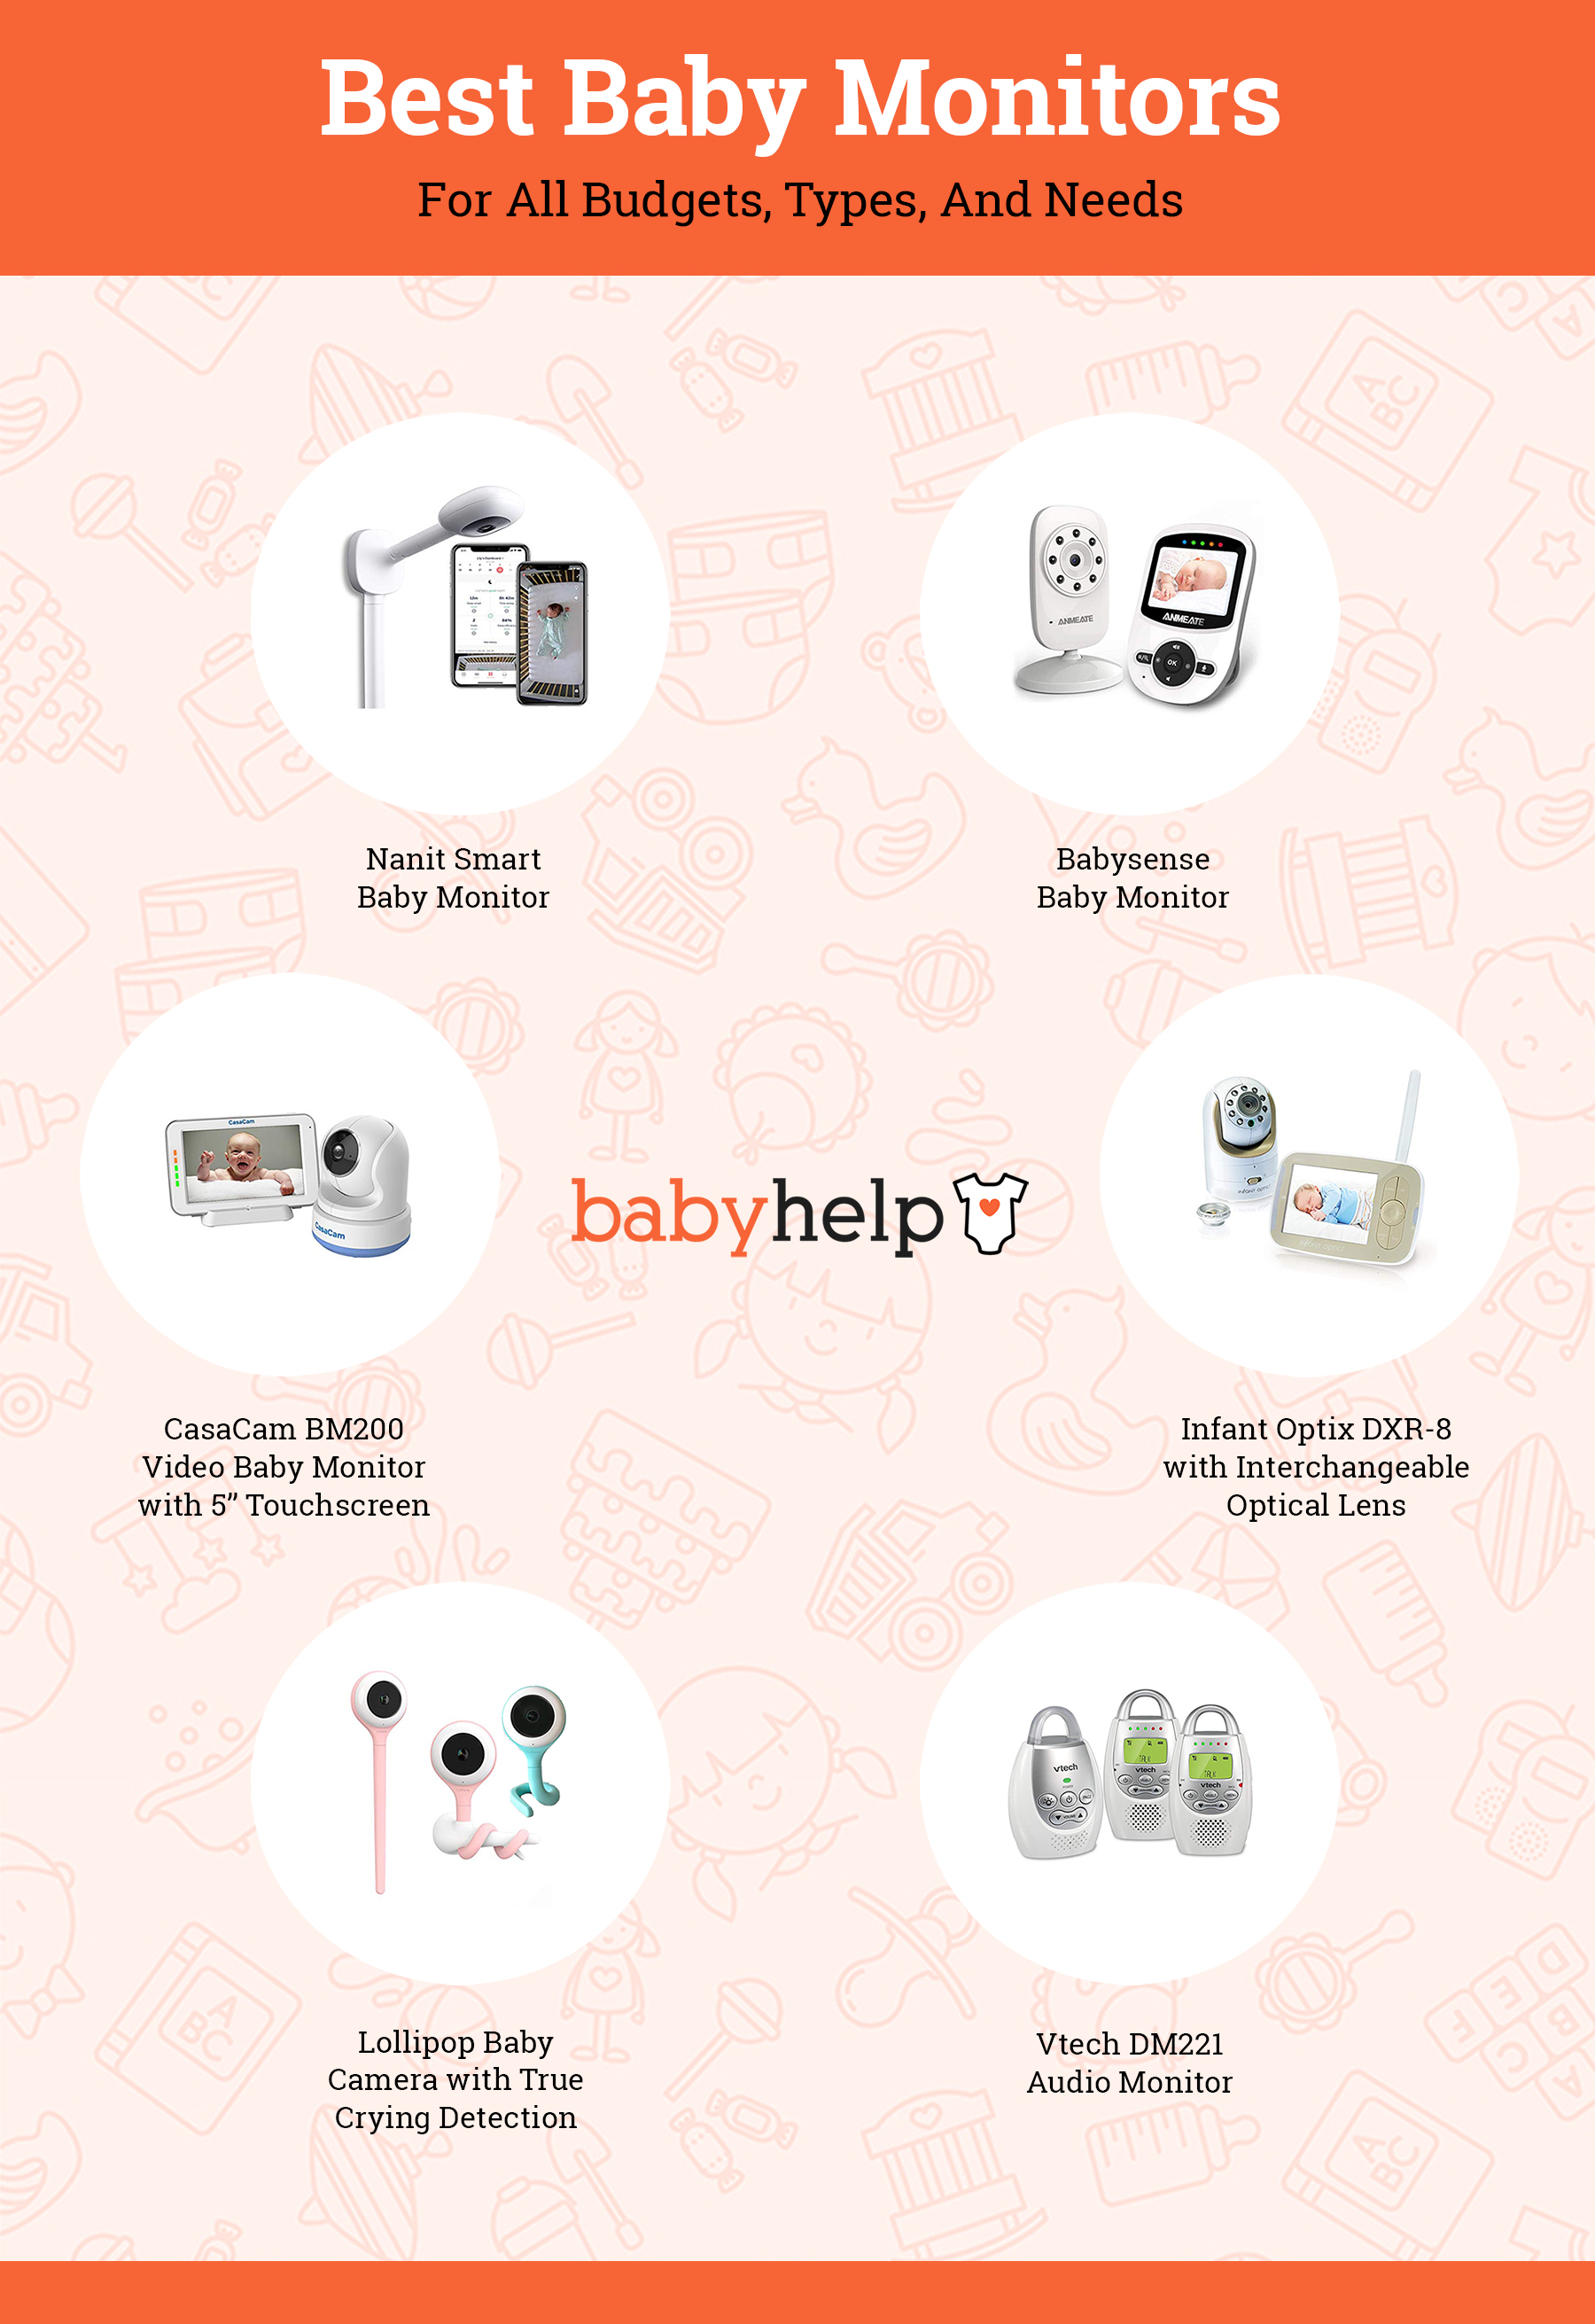 Infographic - The Best Selling Baby Monitors on the Market for all Budgets, Types and Needs